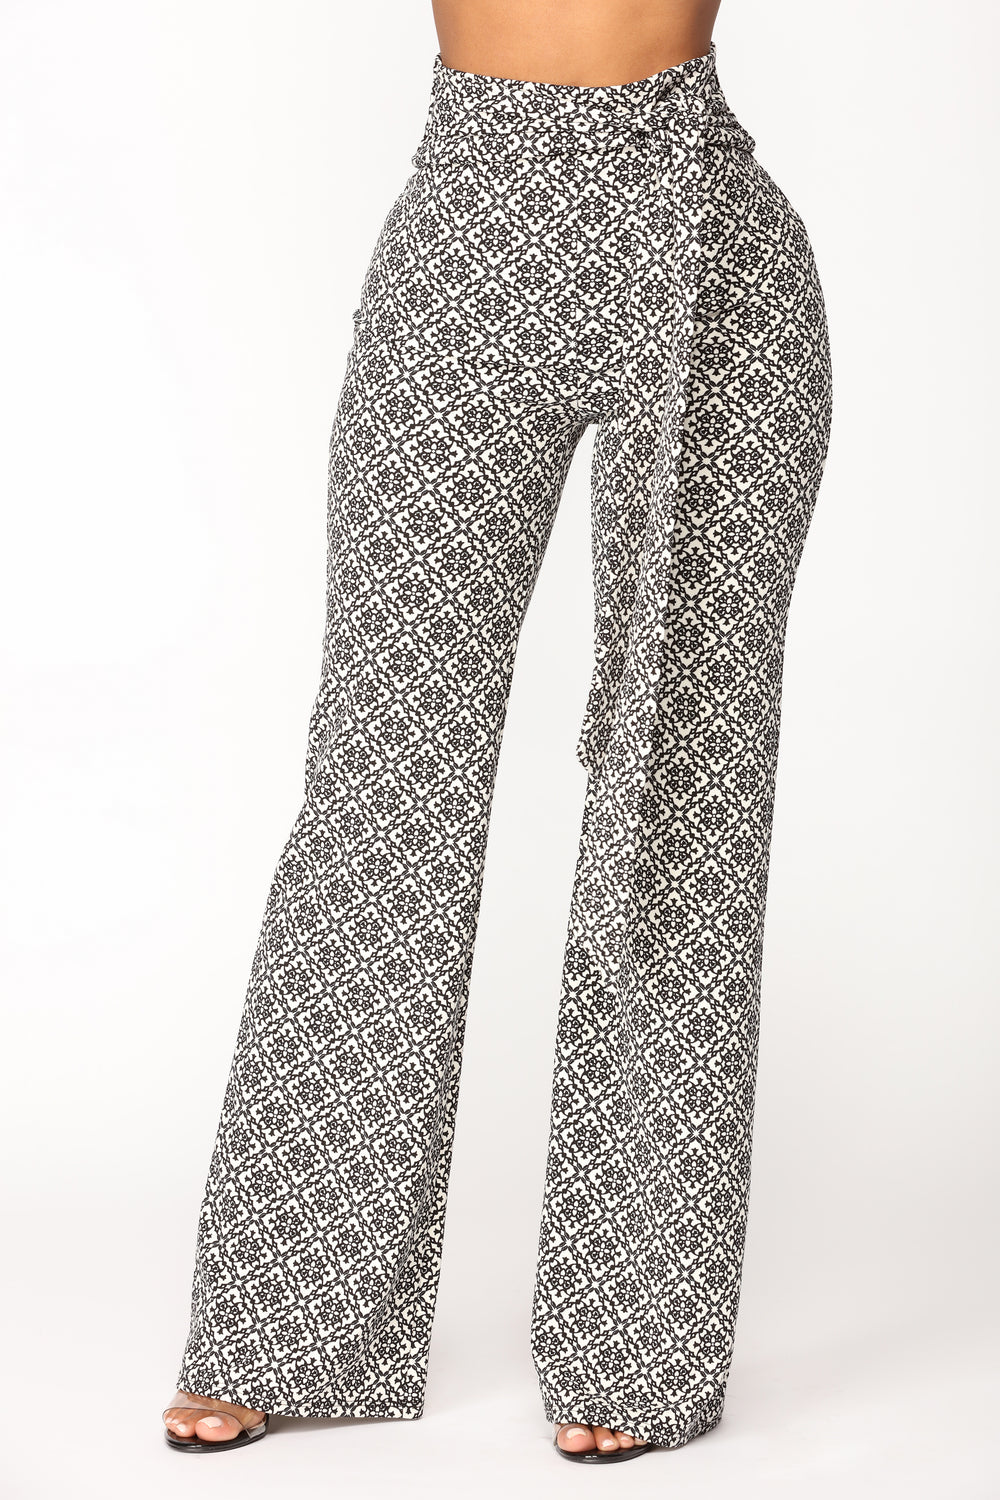 Victoriana Printed Pants - Black/White